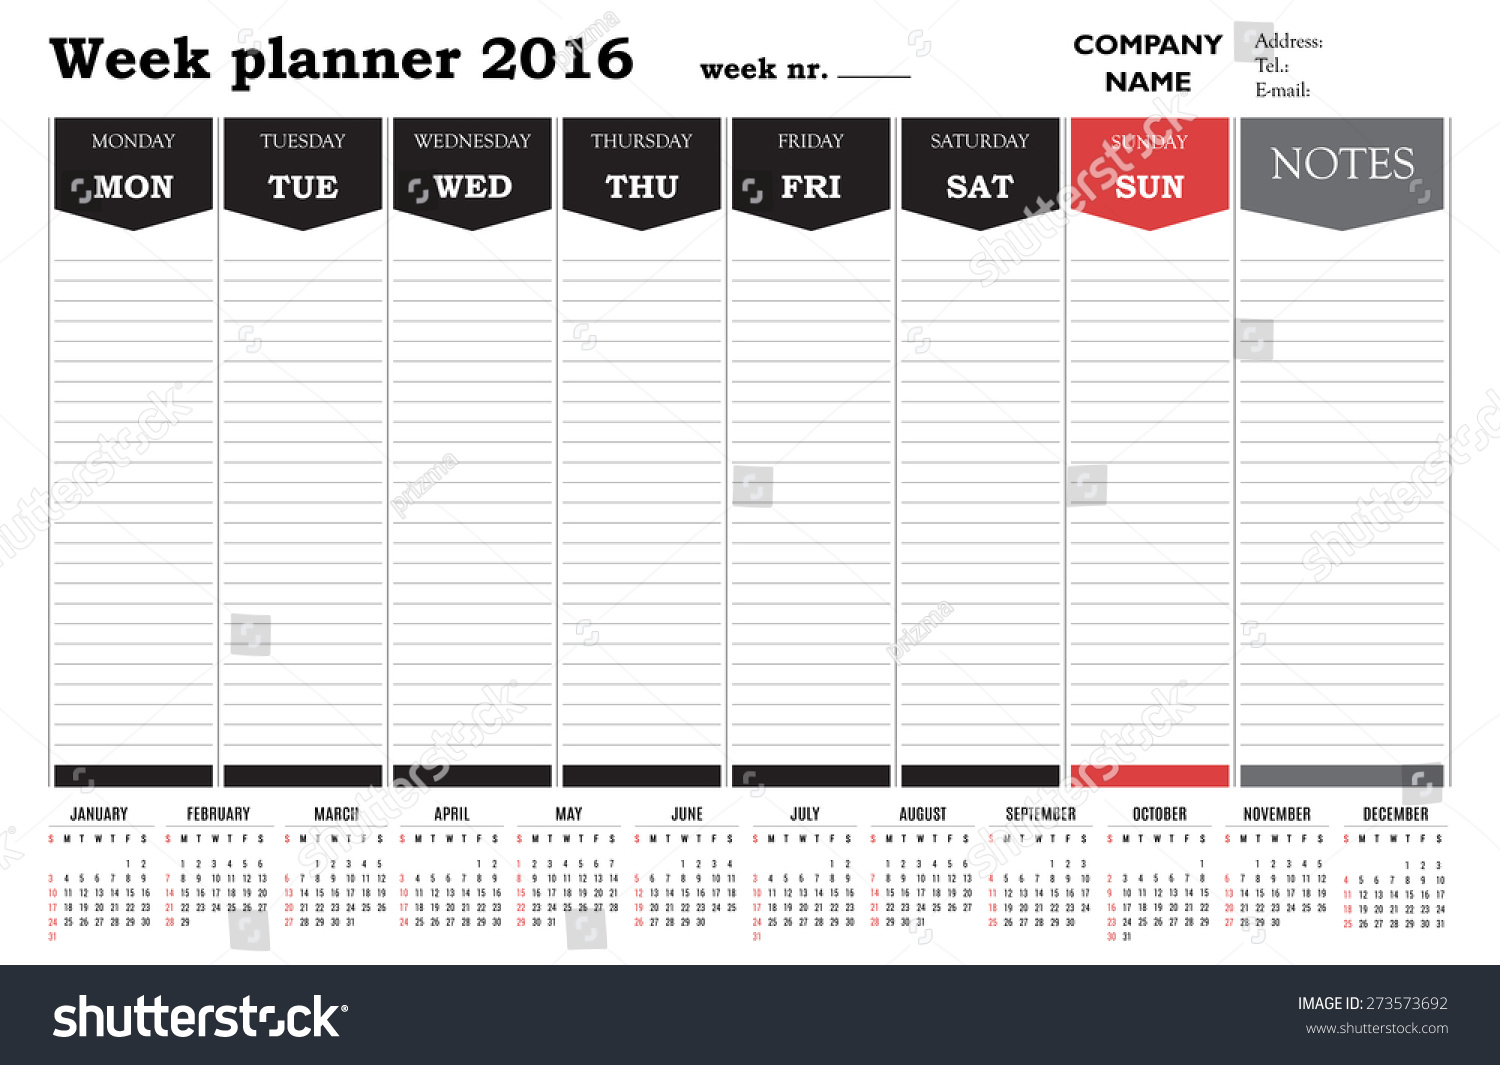 Office Calendar 2016 : Week planner calendar black white stock vector royalty free